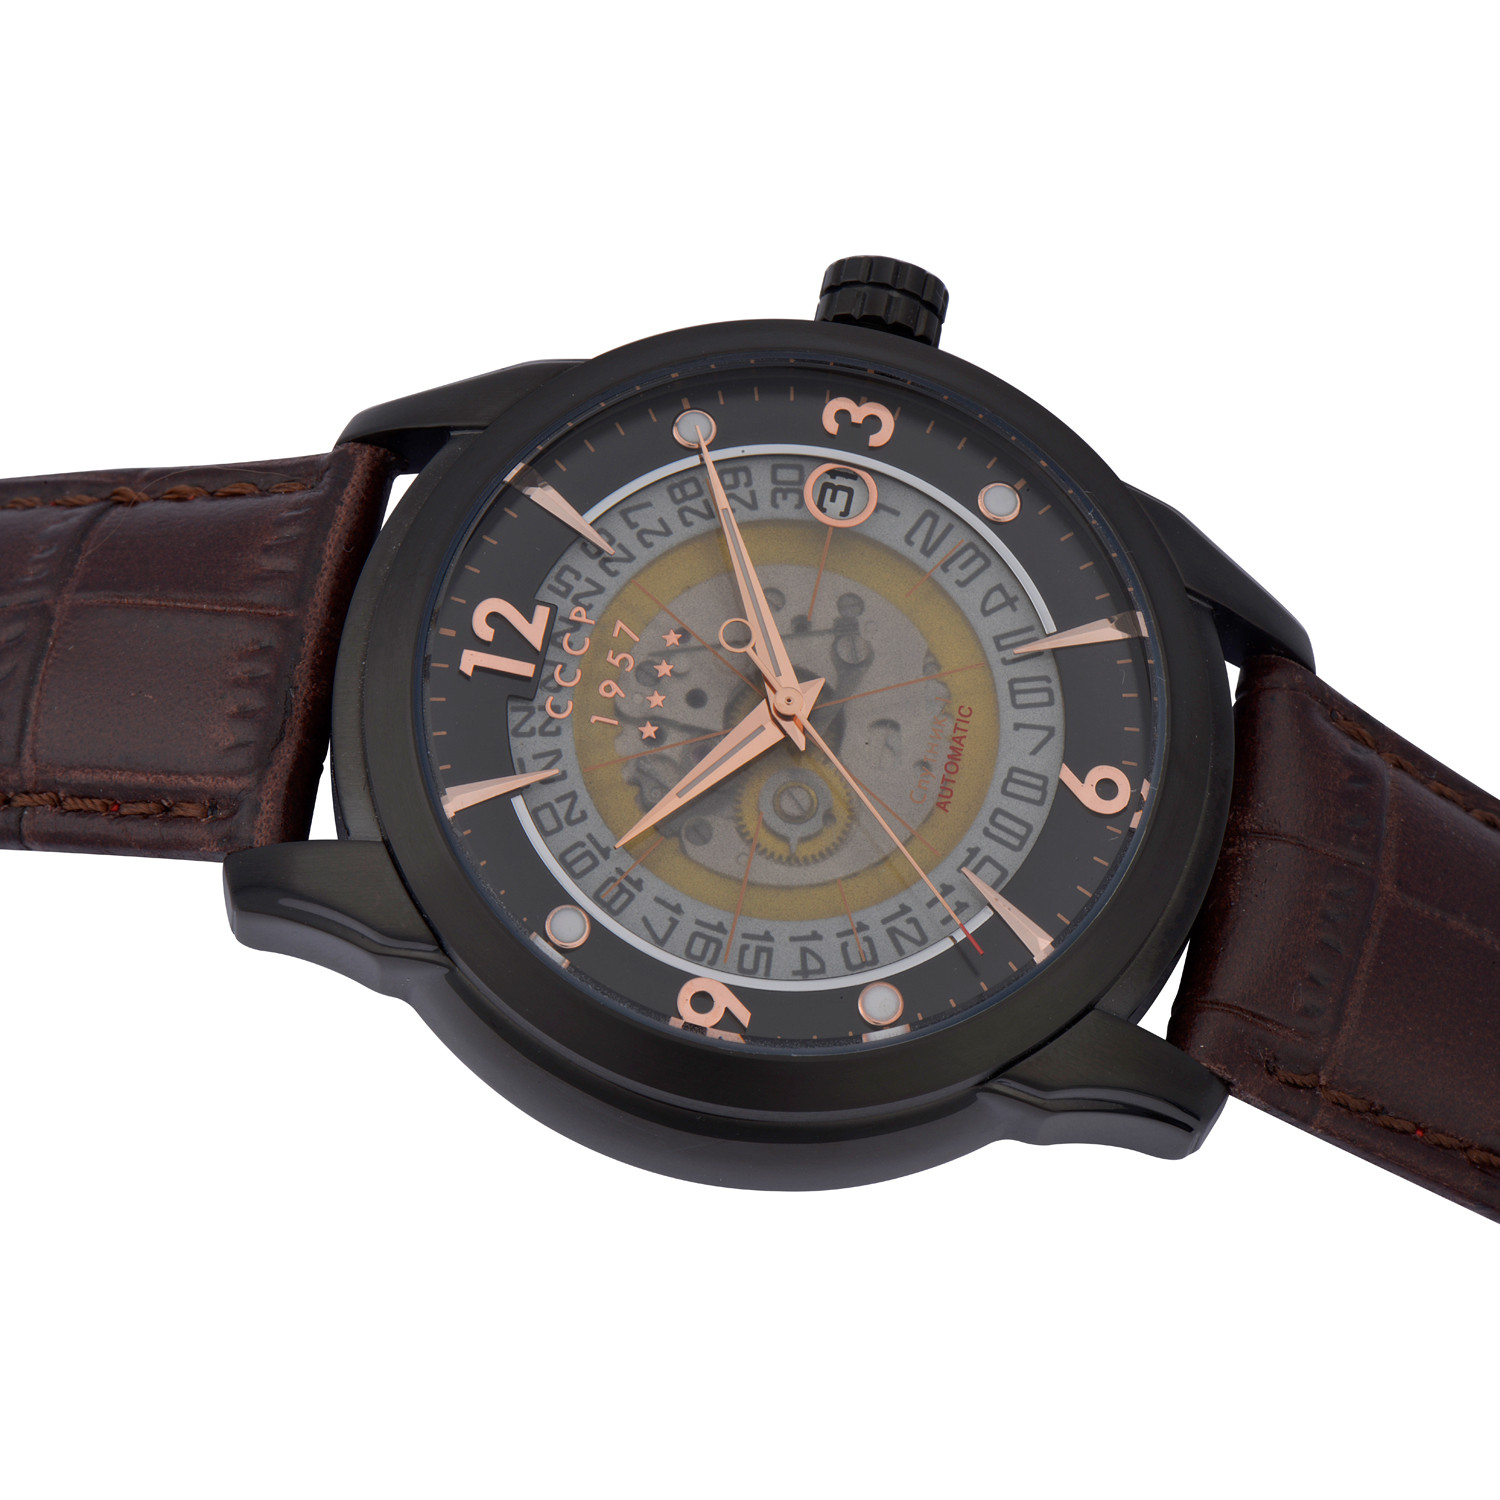 Cccp Sputnik 1 Automatic Cp 7001 06 Cccp Watches Touch Of Modern